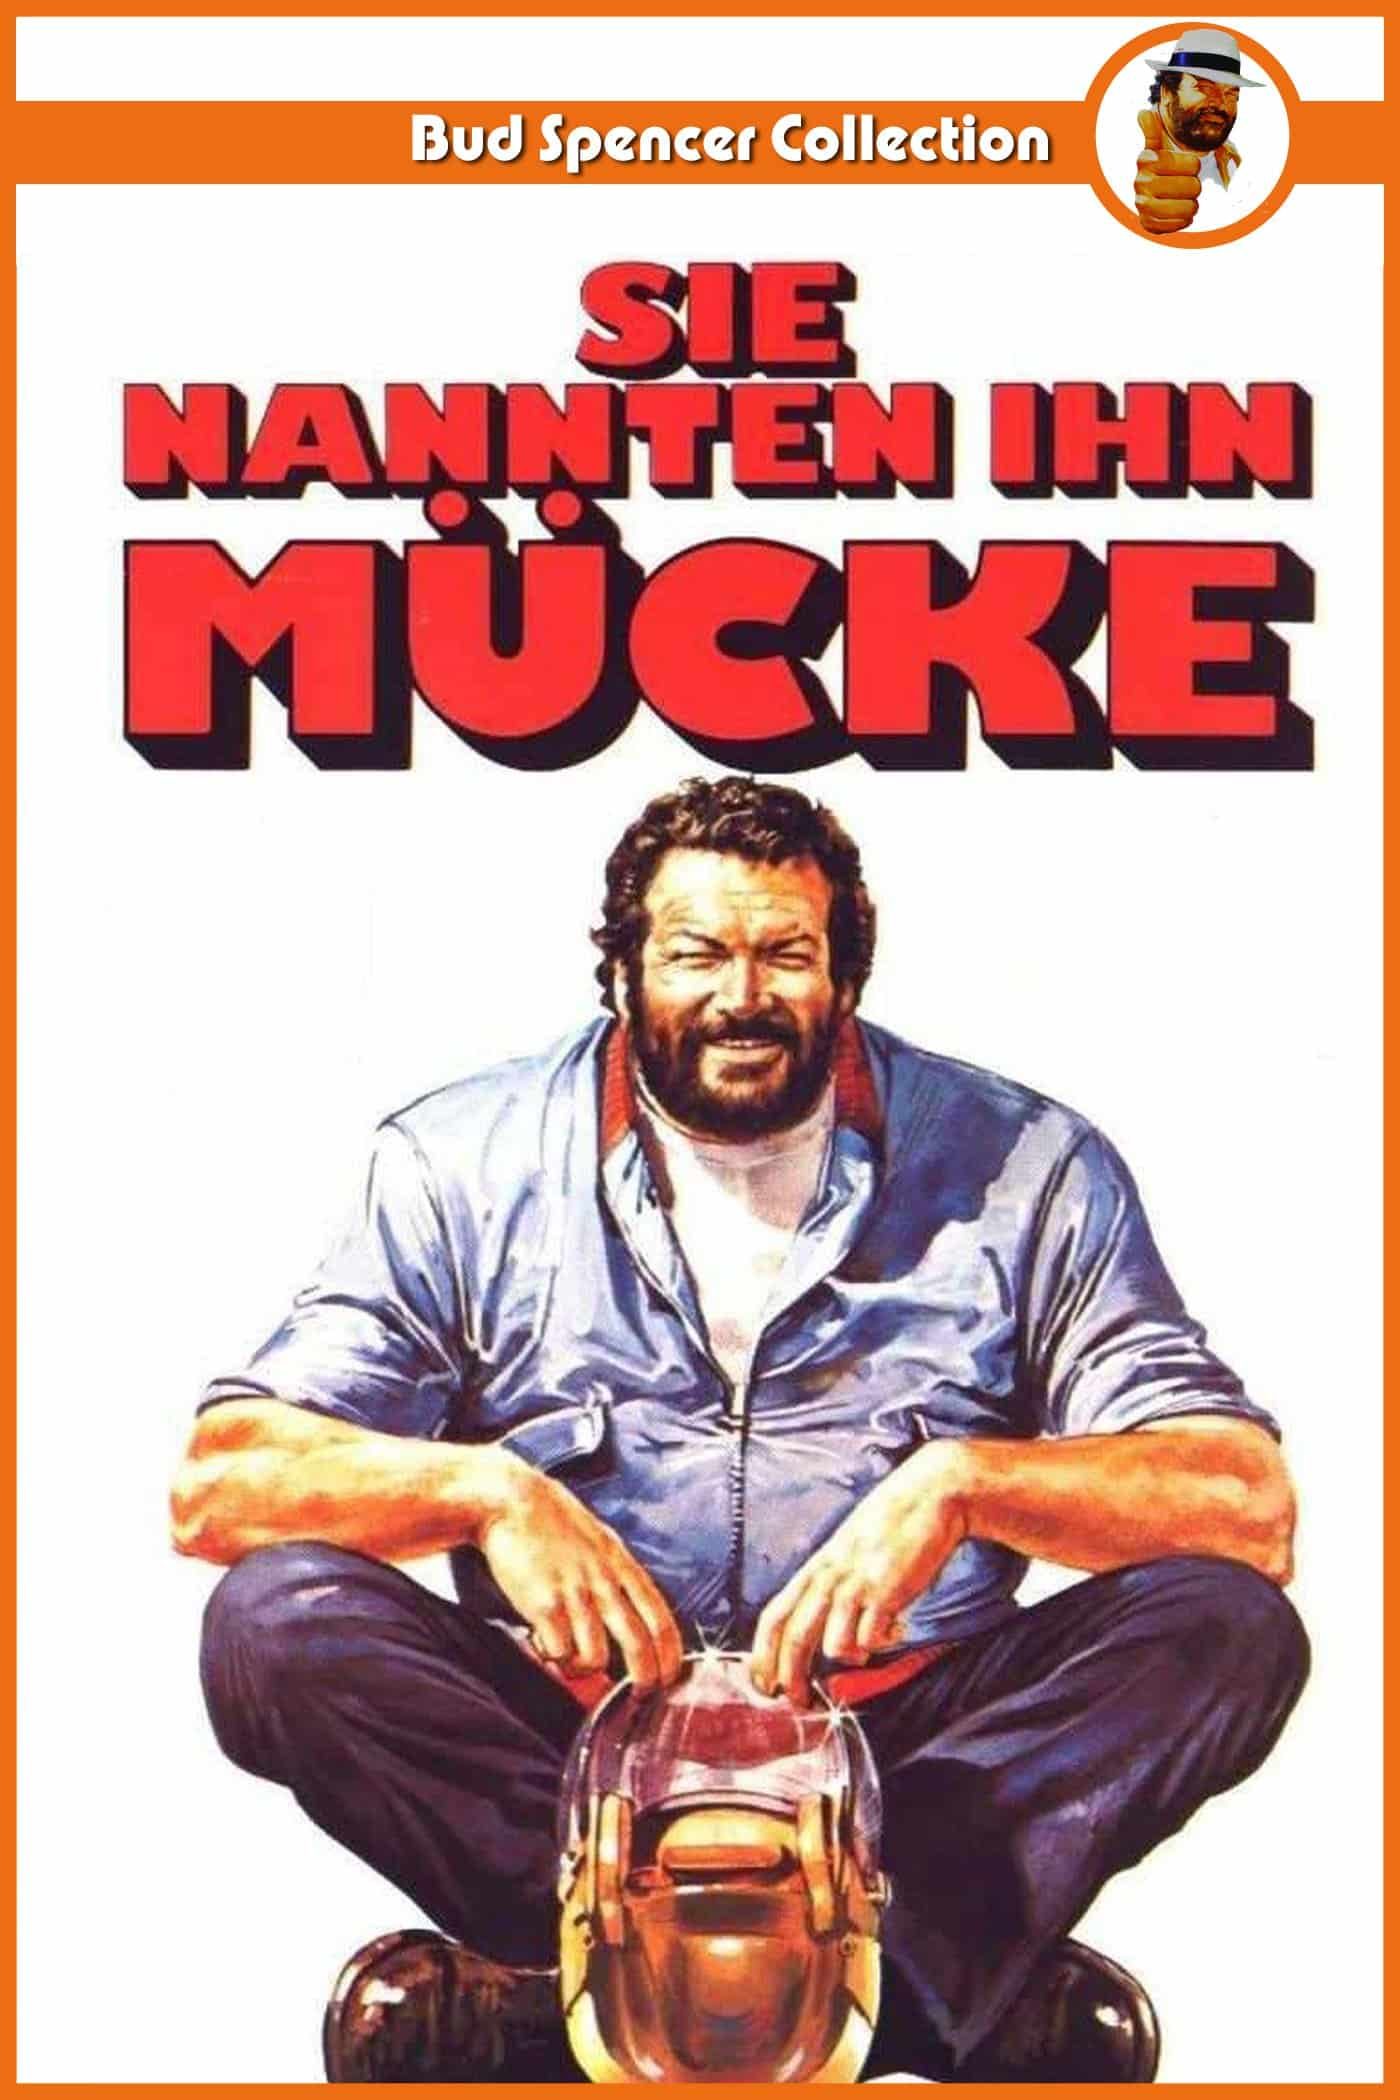 sie nannten ihn m cke bud spencer filminfos. Black Bedroom Furniture Sets. Home Design Ideas